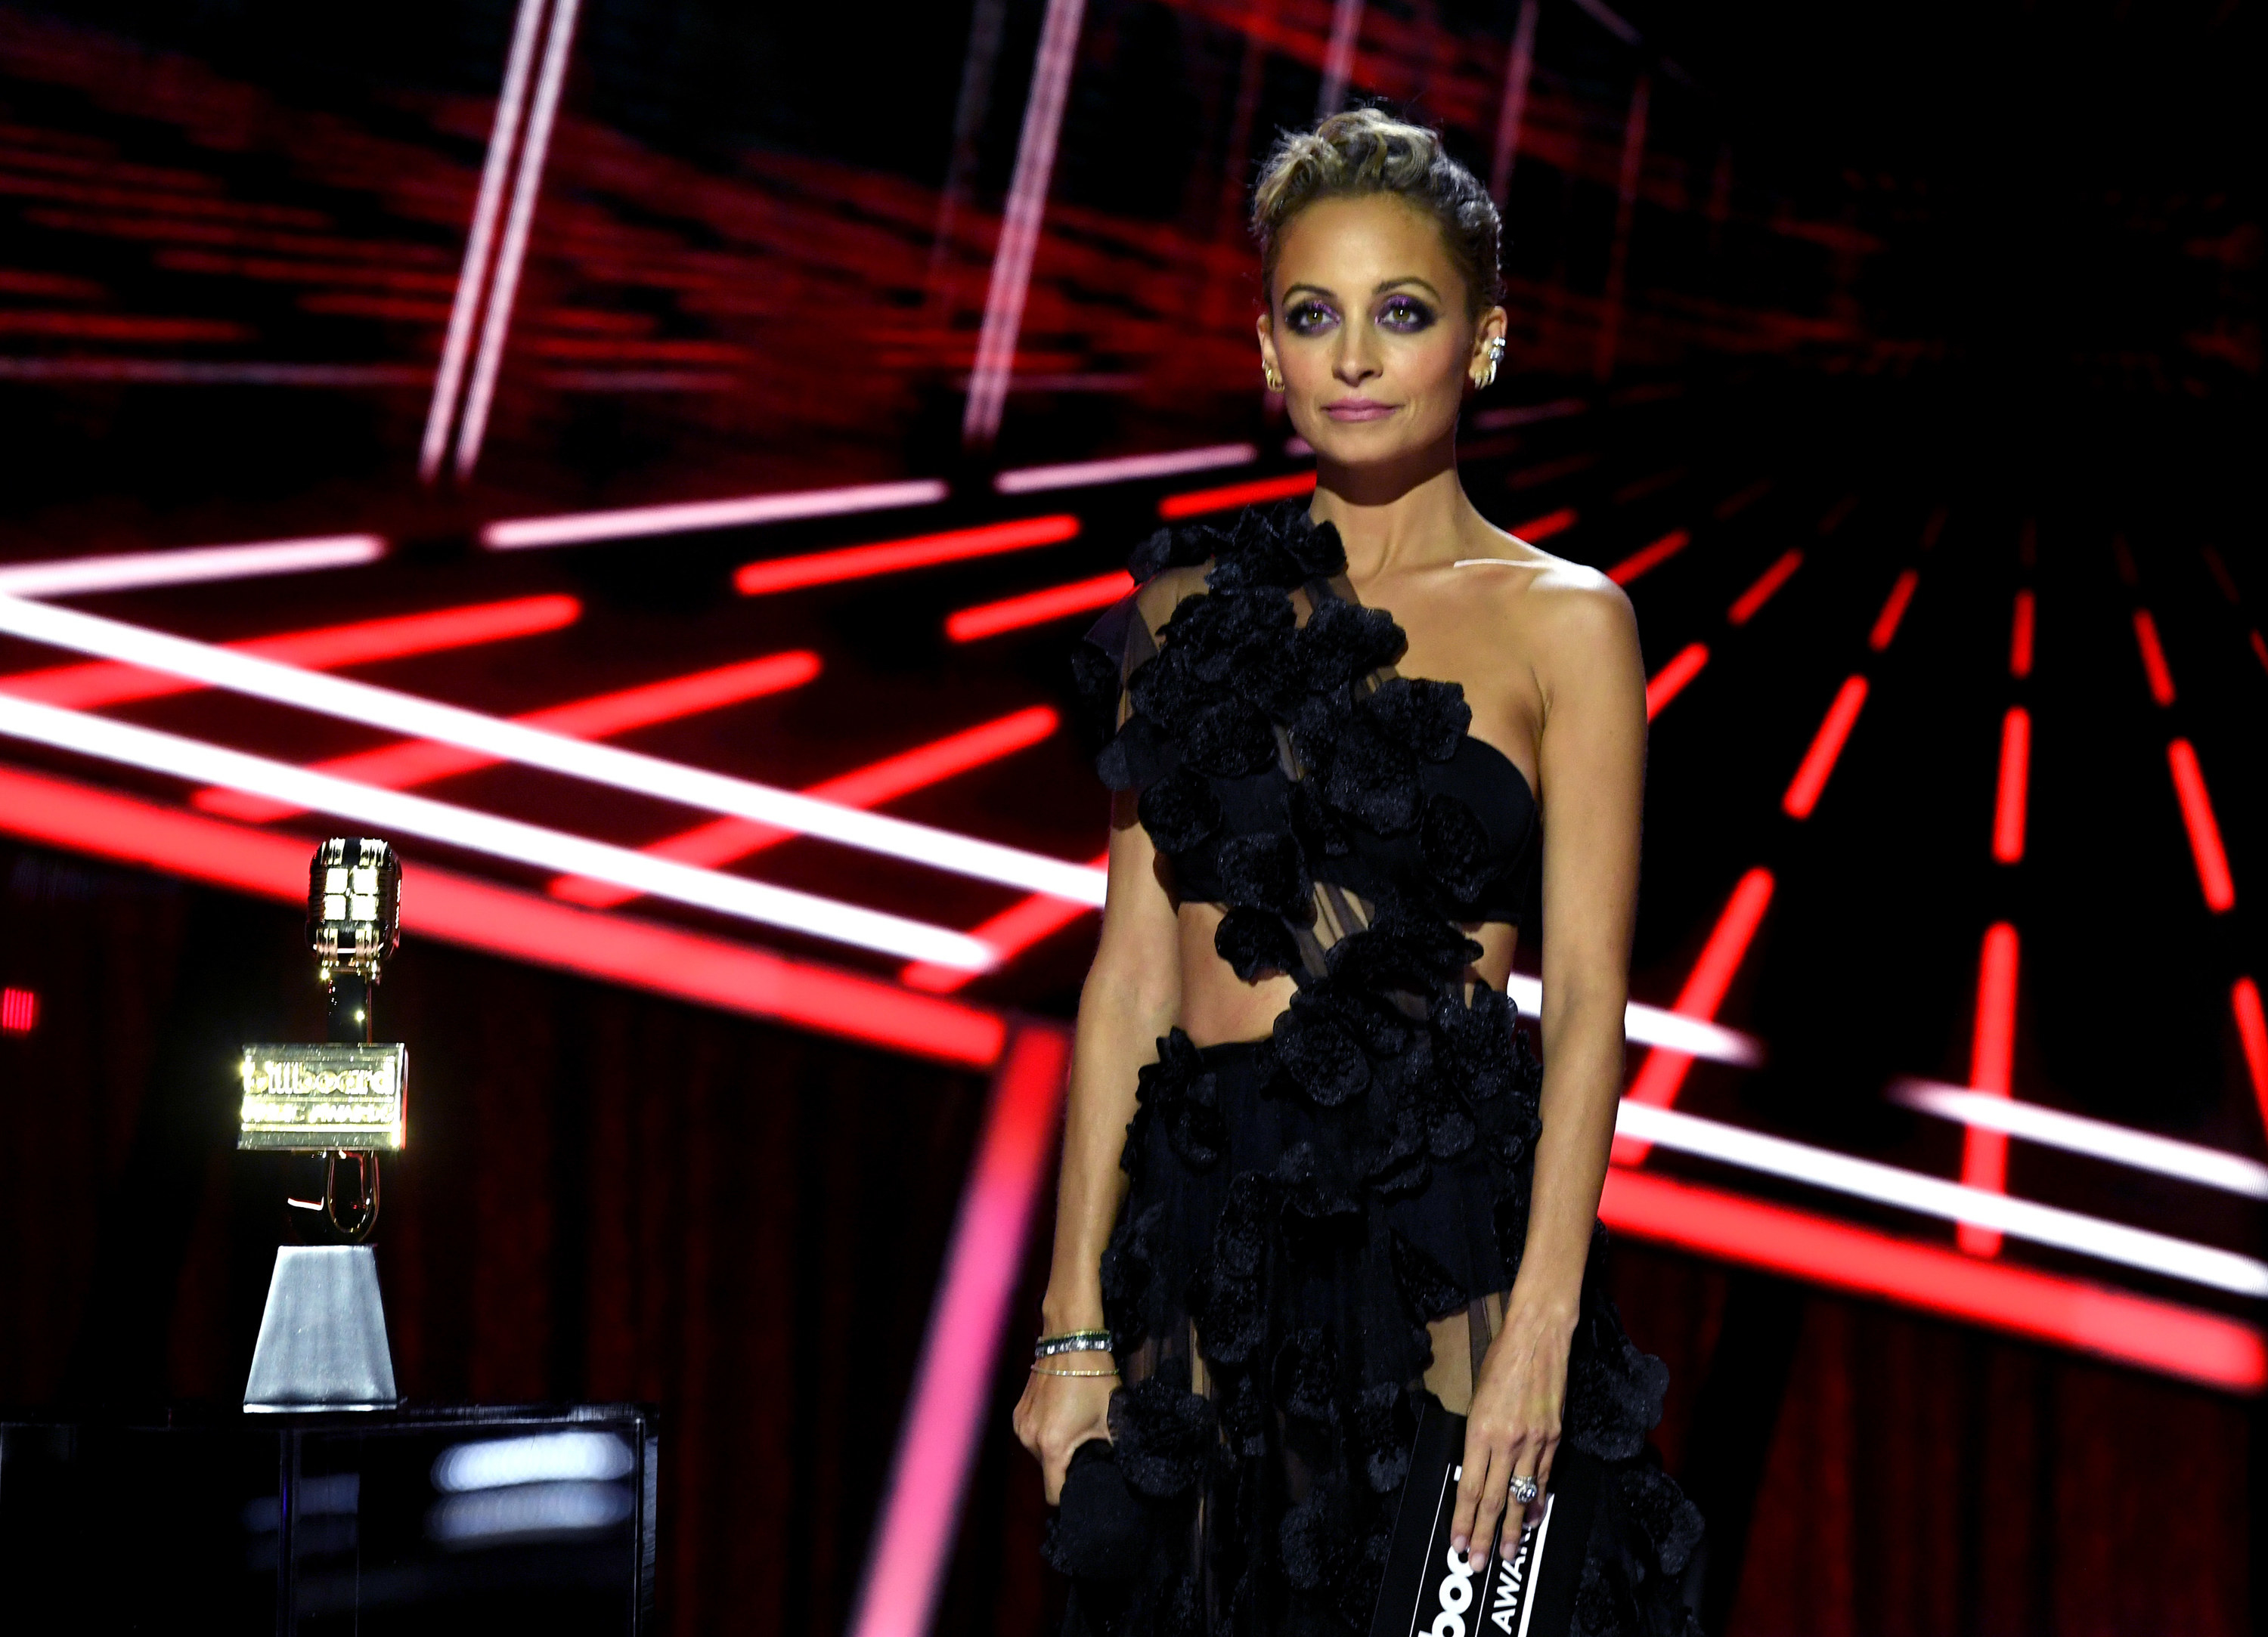 Nicole Richie at the 2020 Billboard Music Awards